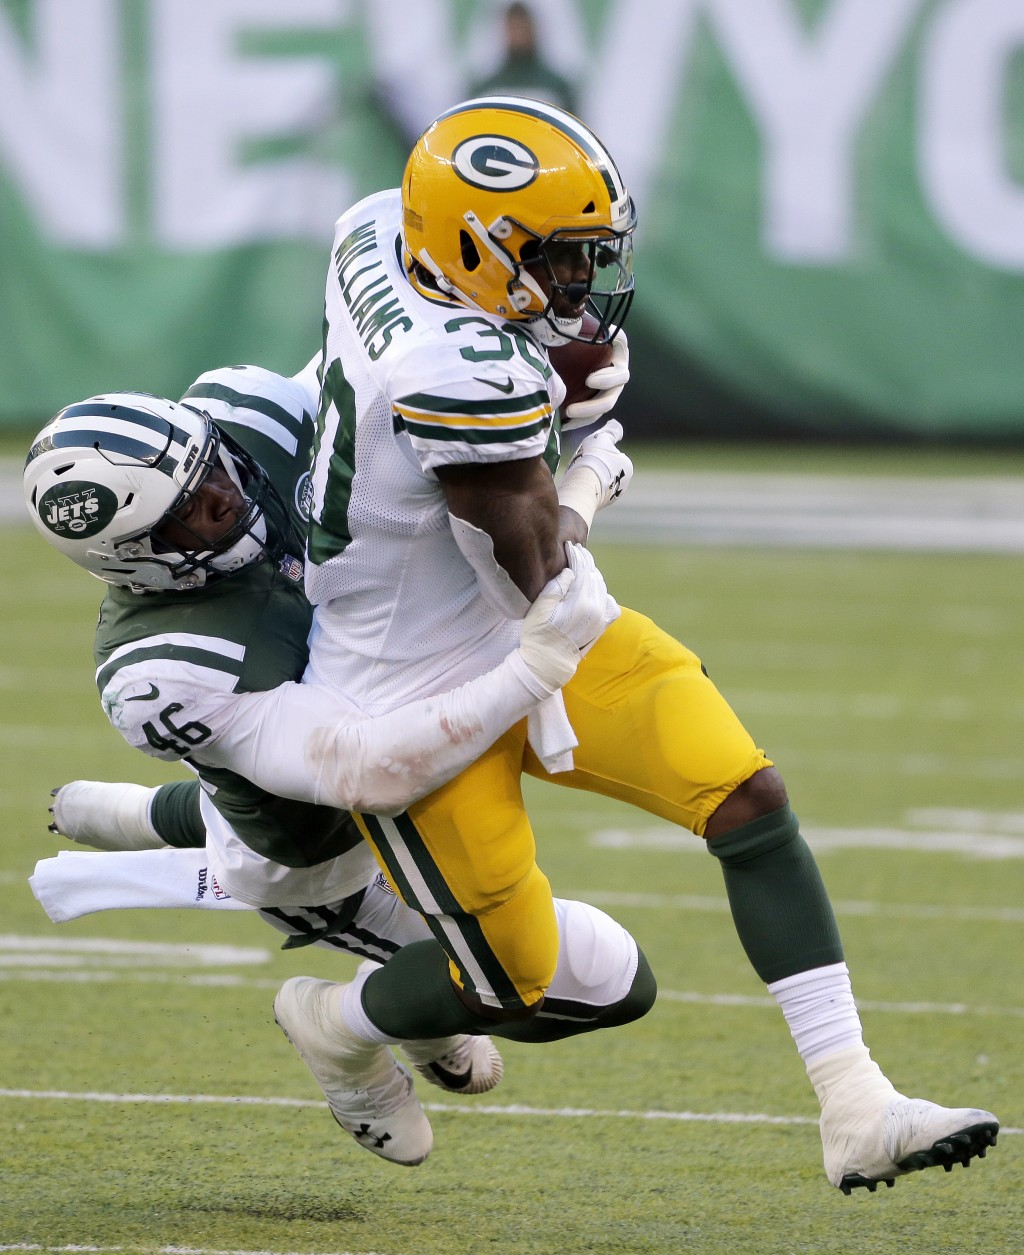 Green Bay Packers running back Jamaal Williams, right, is tackled by New York Jets linebacker Neville Hewitt during the second half of an NFL football...